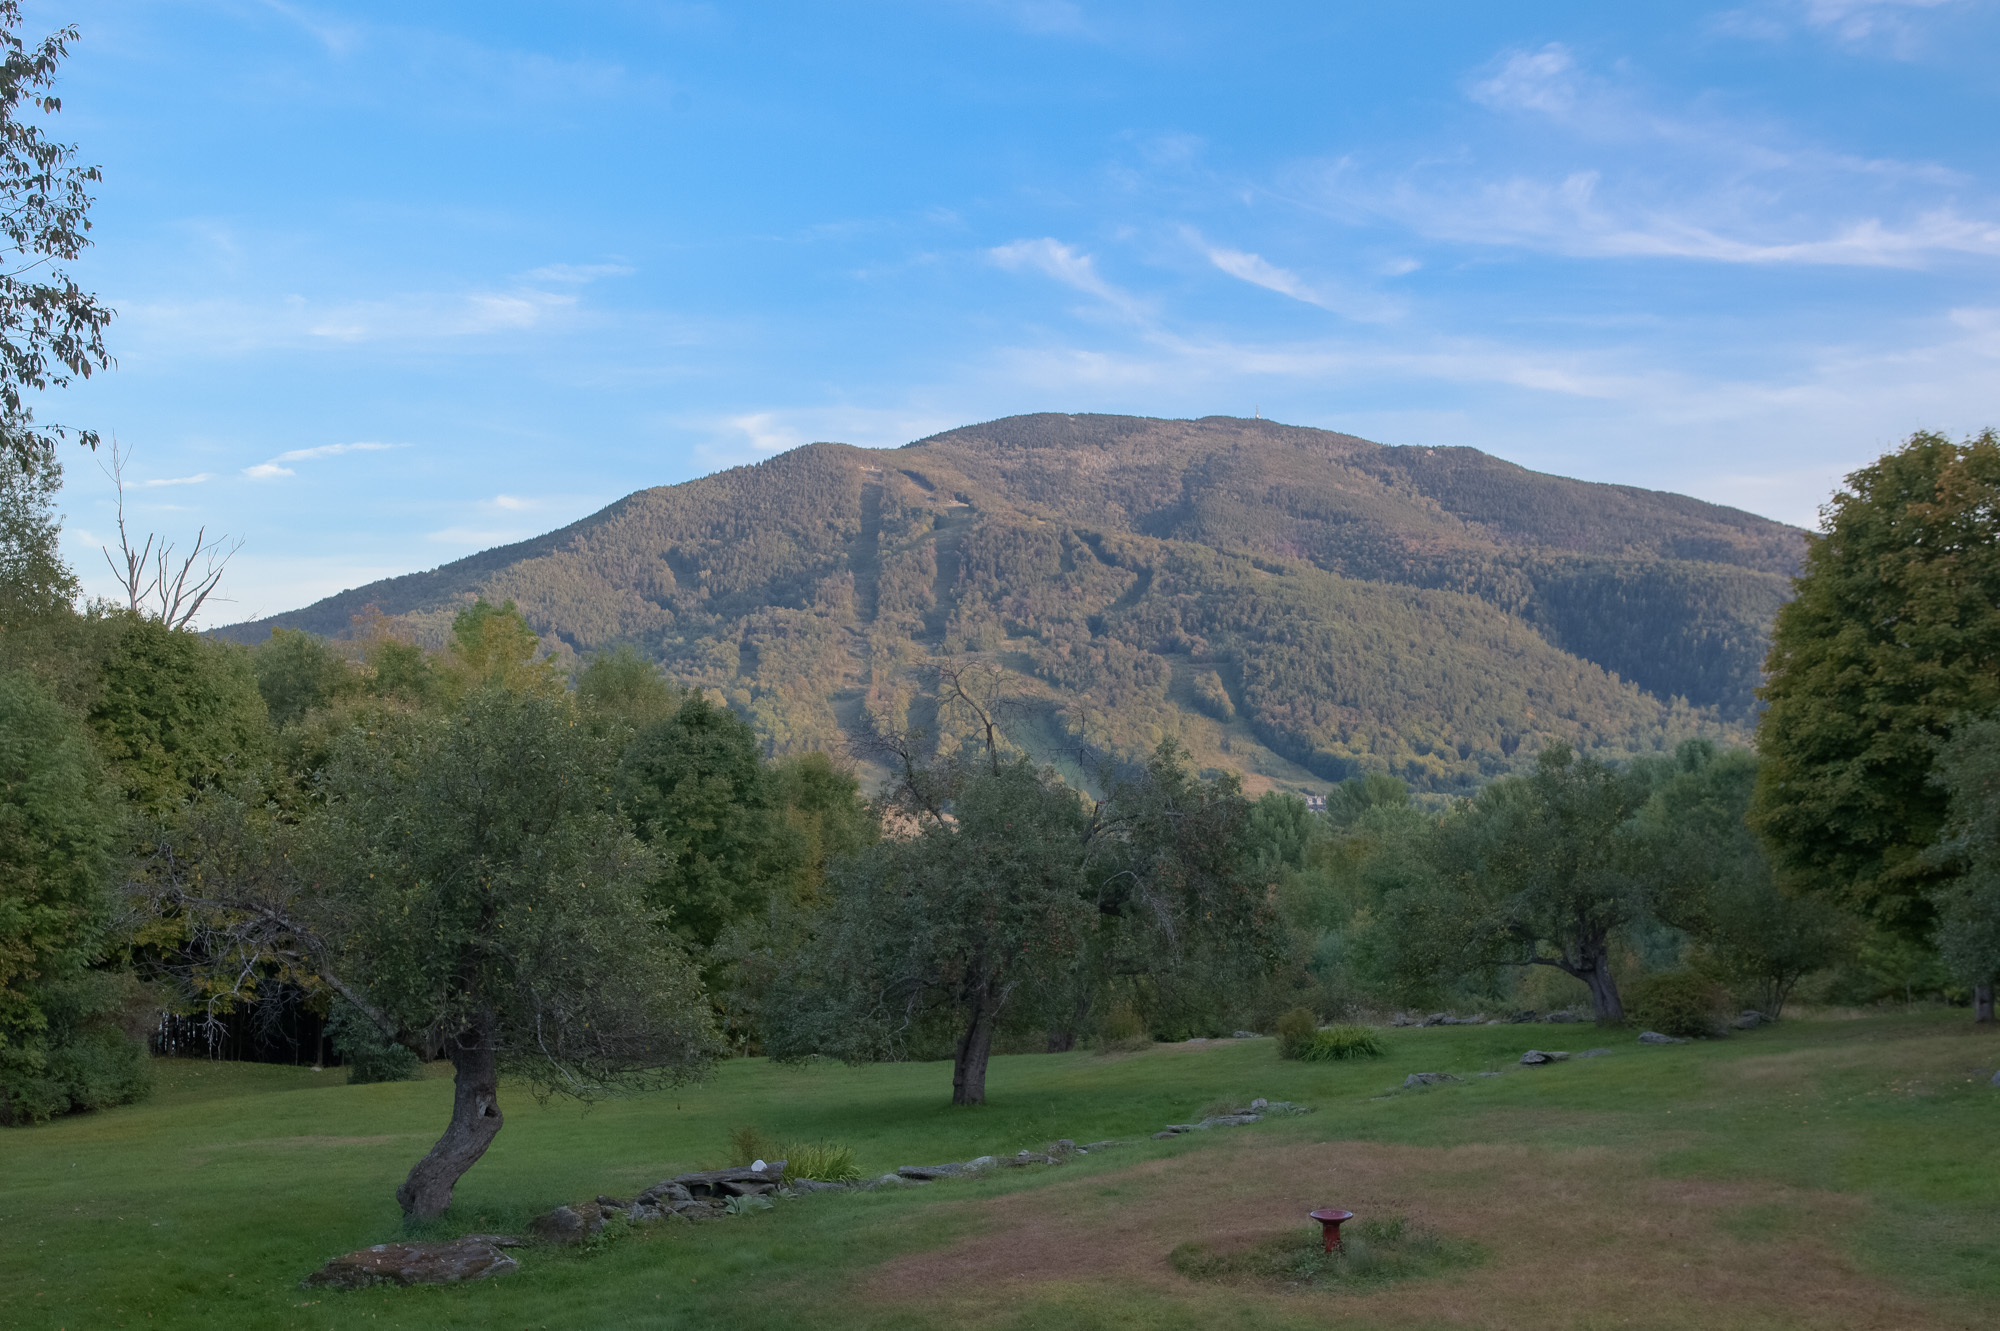 View of Ascutney from the Brown's house.